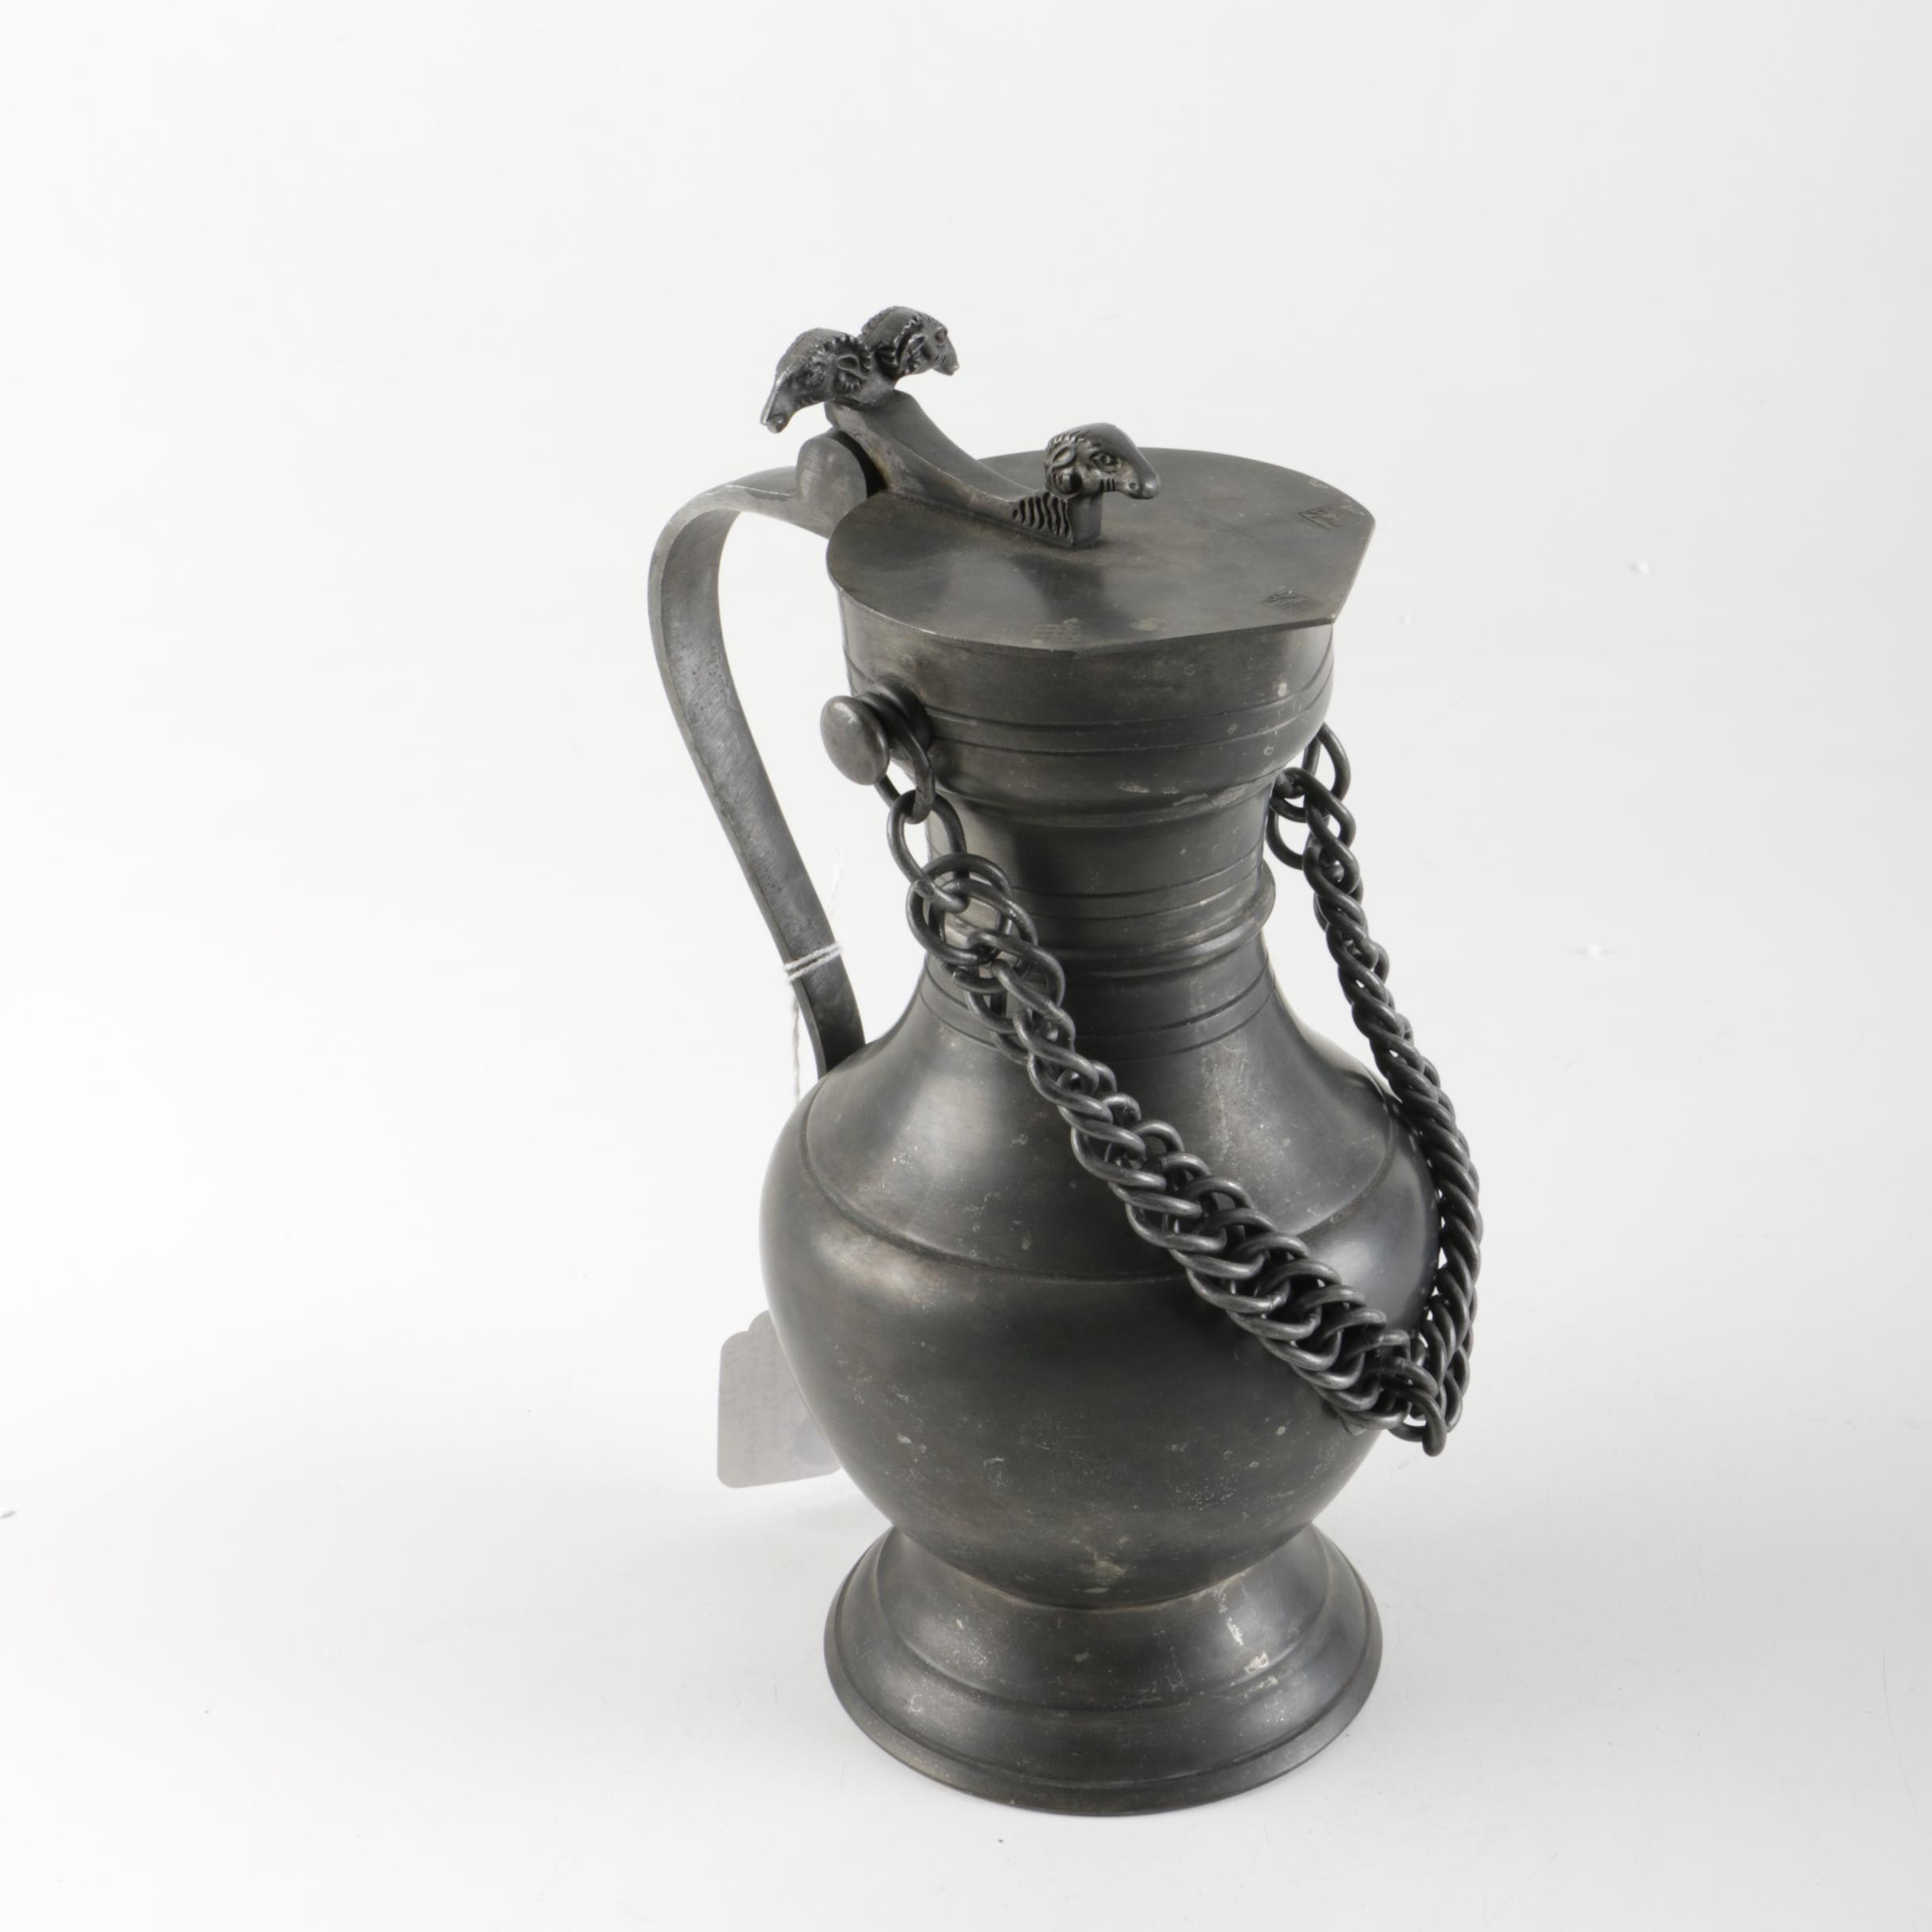 Pewter Flagon with Ram Shaped Accents